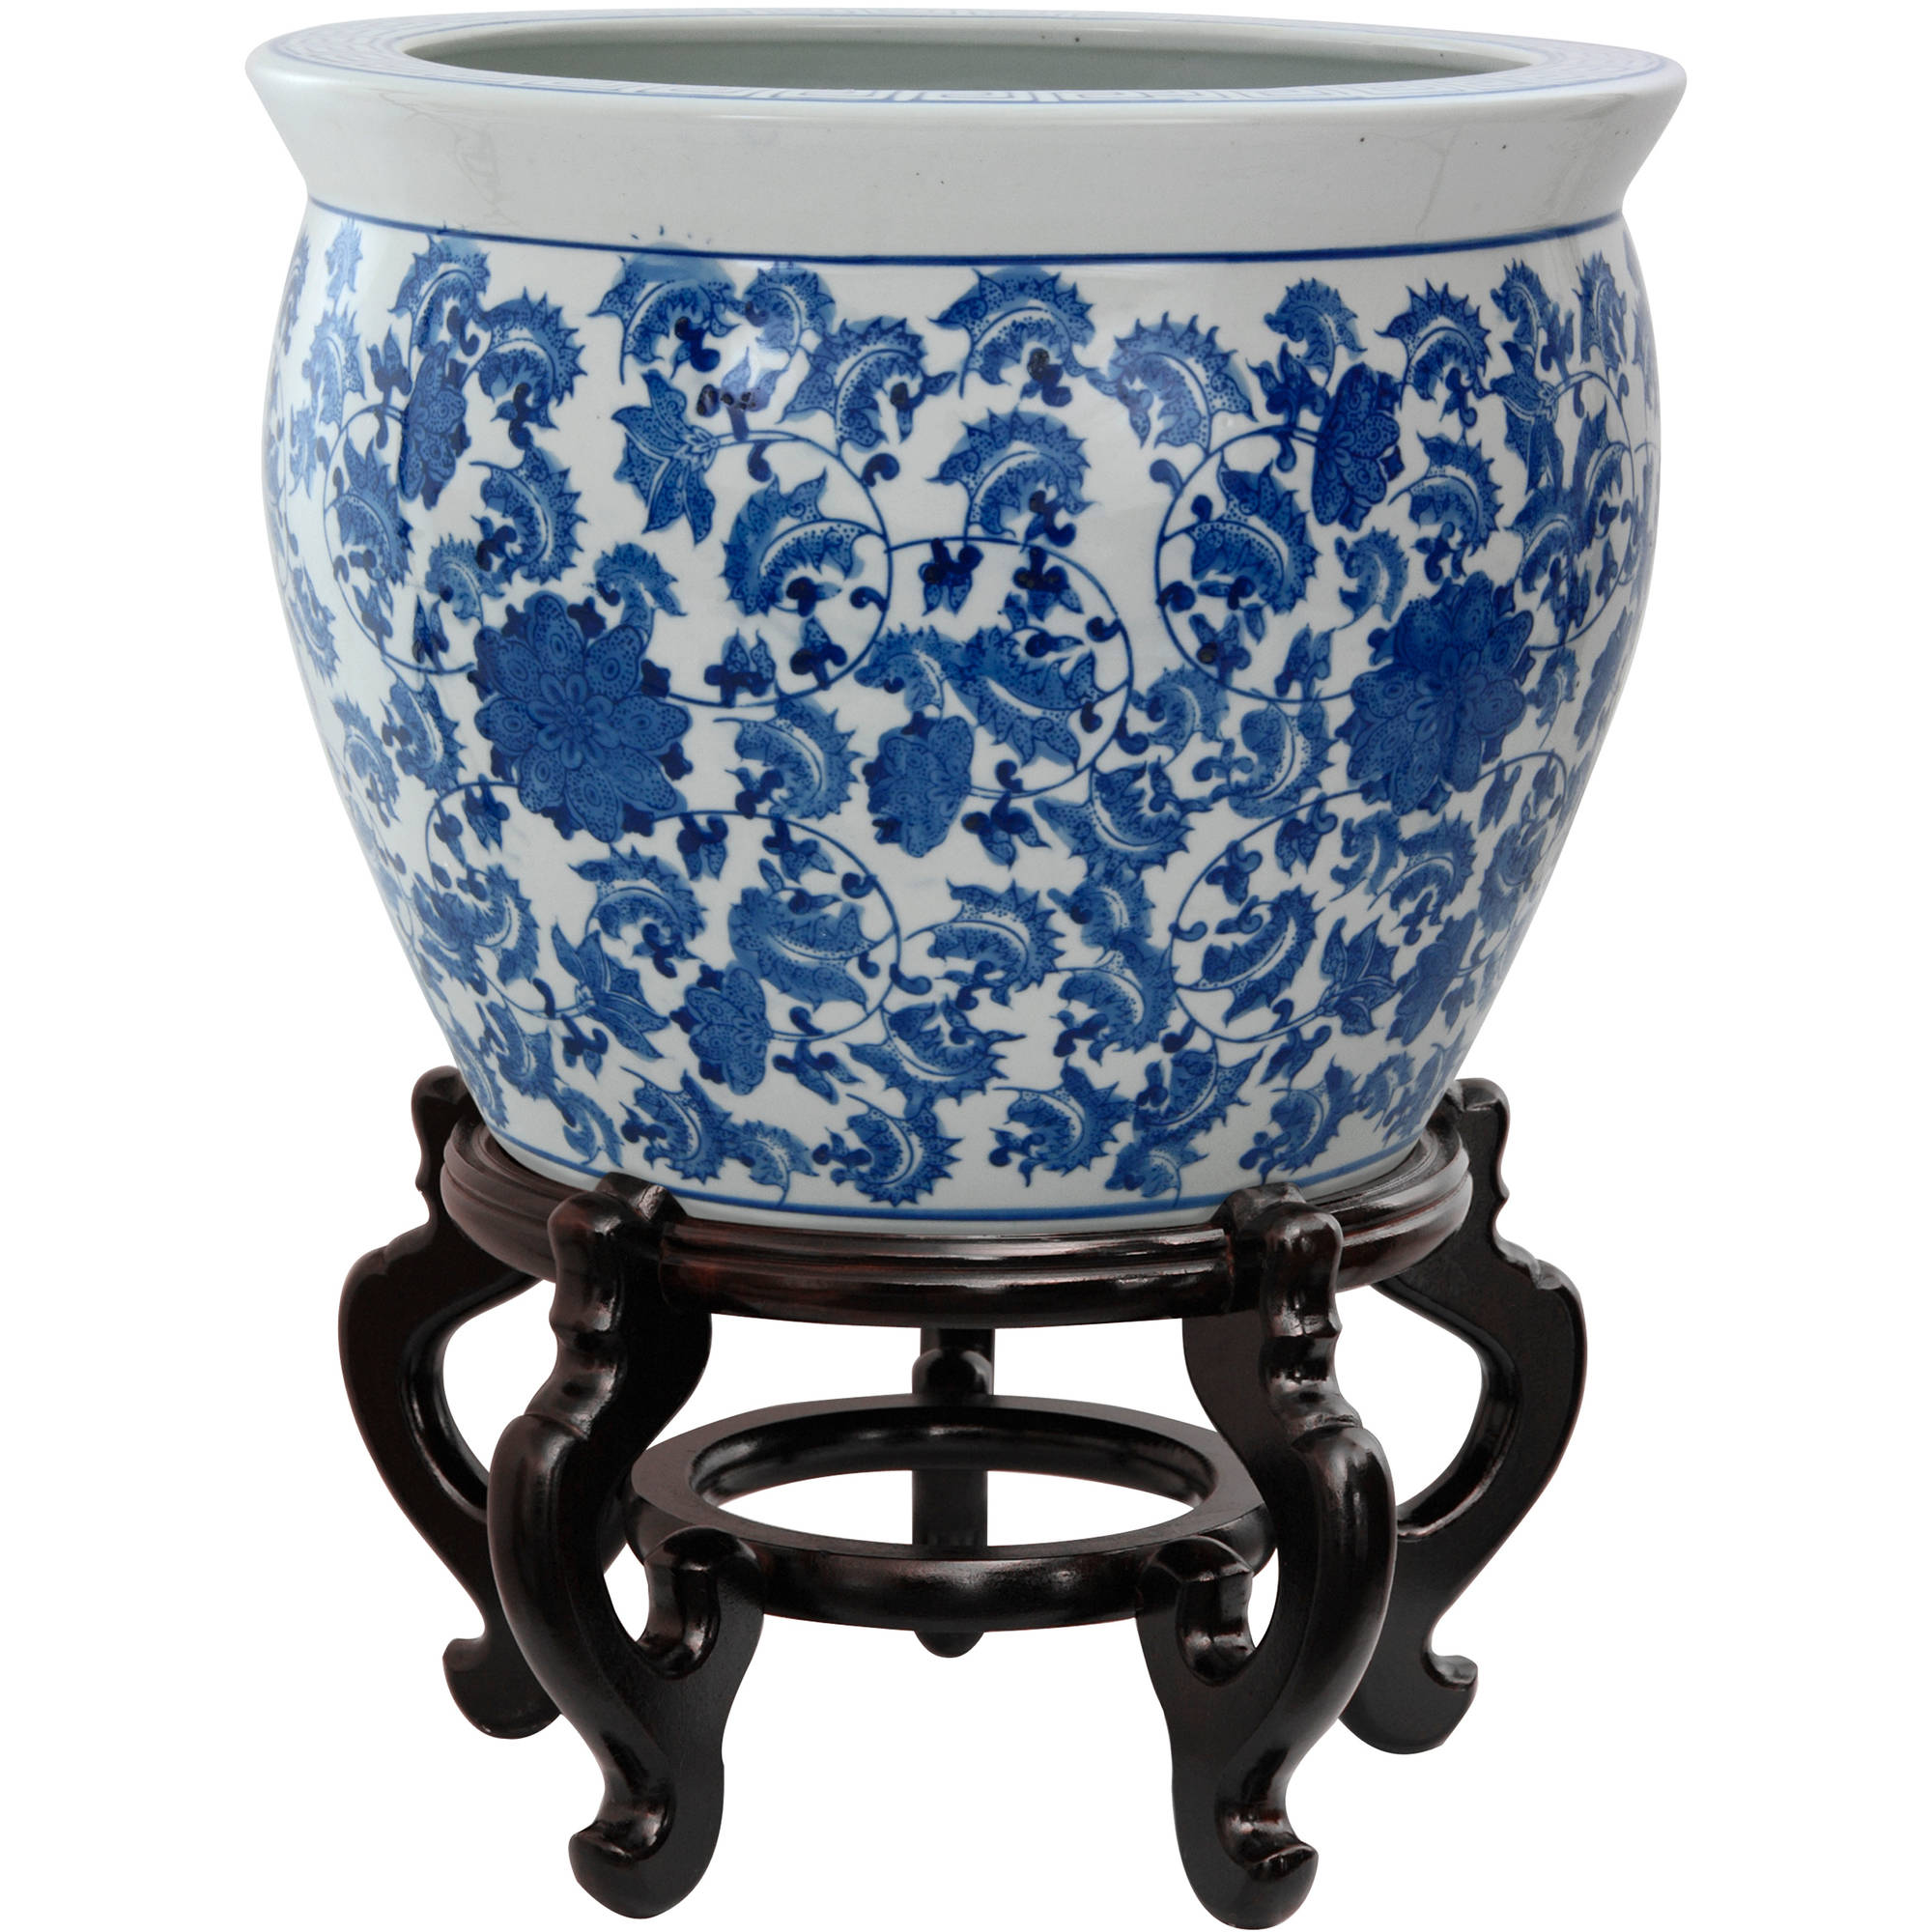 "12"" Floral Blue & White Porcelain Fishbowl"